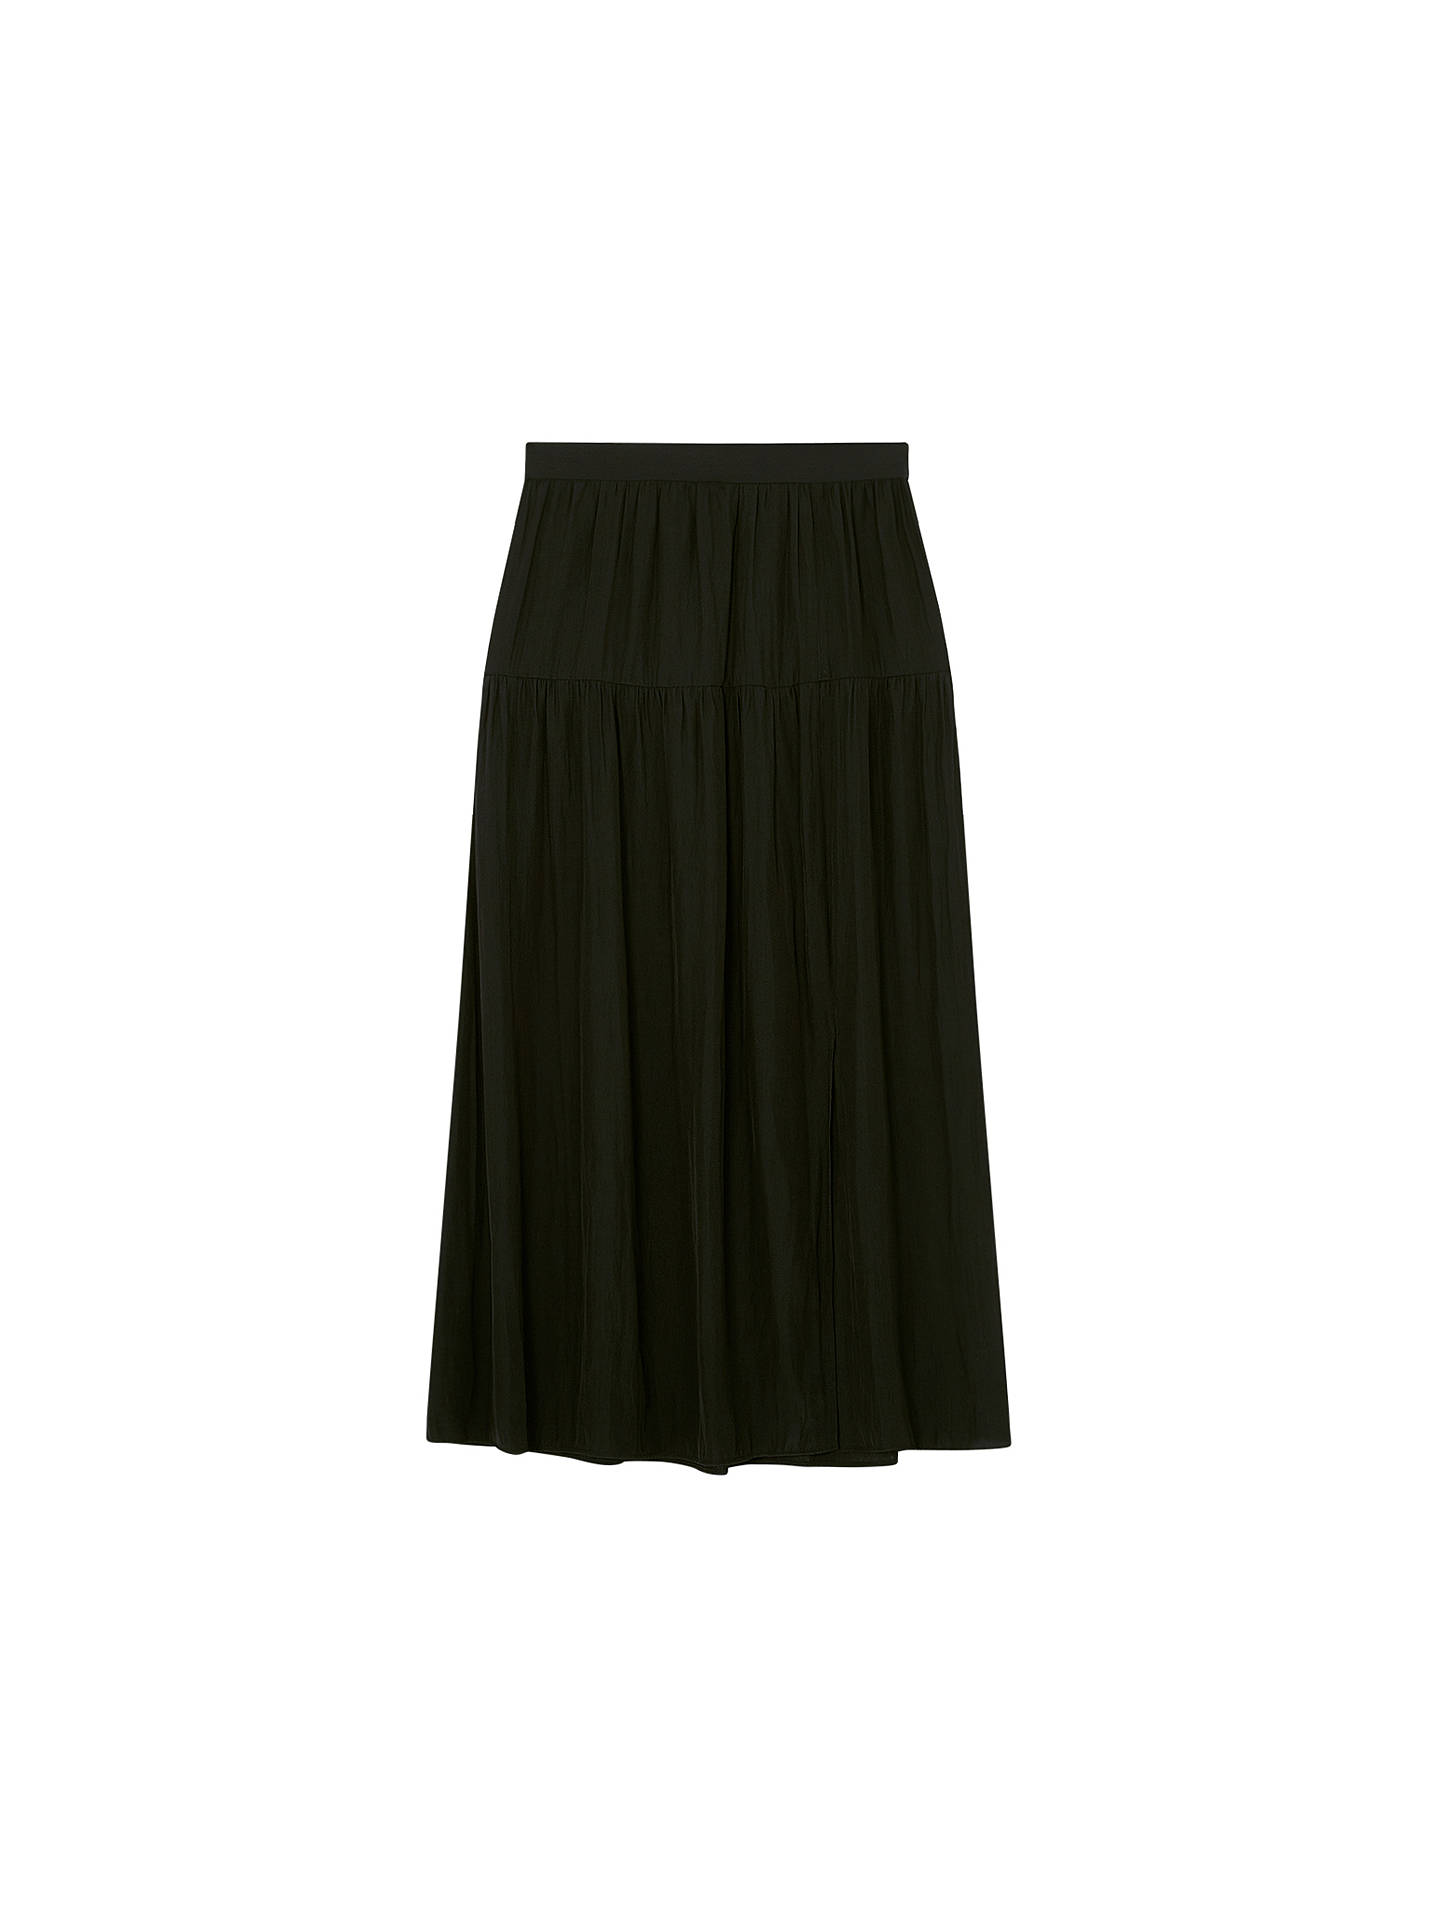 BuyGerard Darel Athina Floral Skirt, Black, 6 Online at johnlewis.com